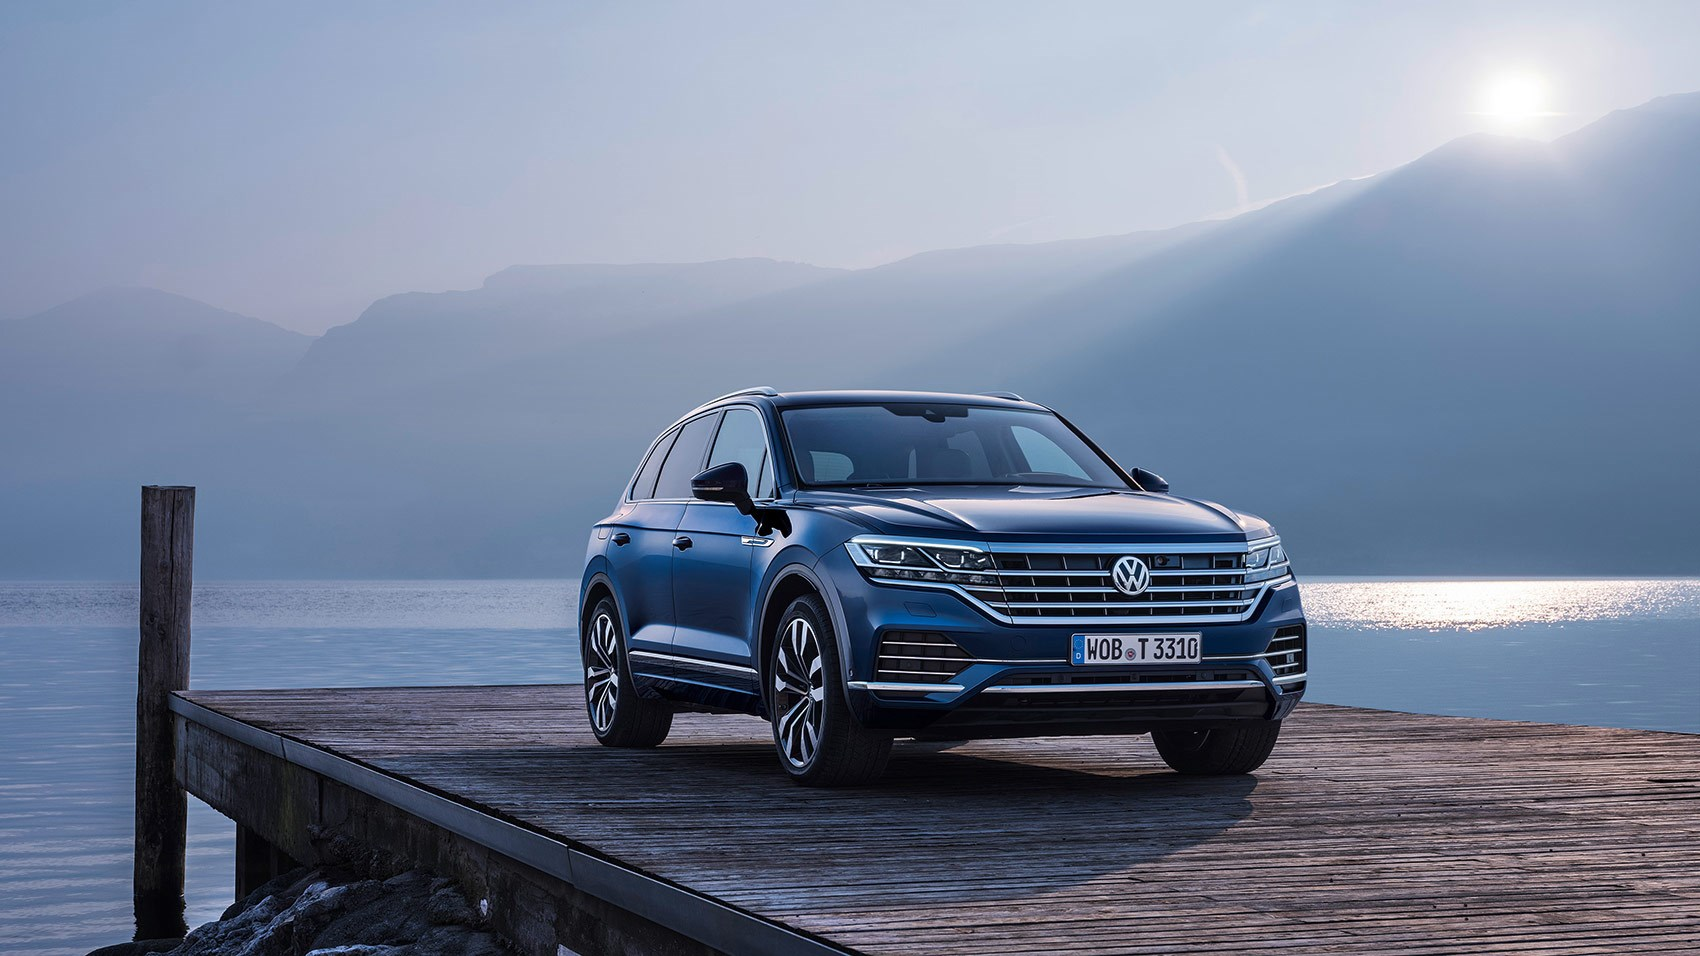 VW Touareg review (2018): specs prices on sale date   CAR ...